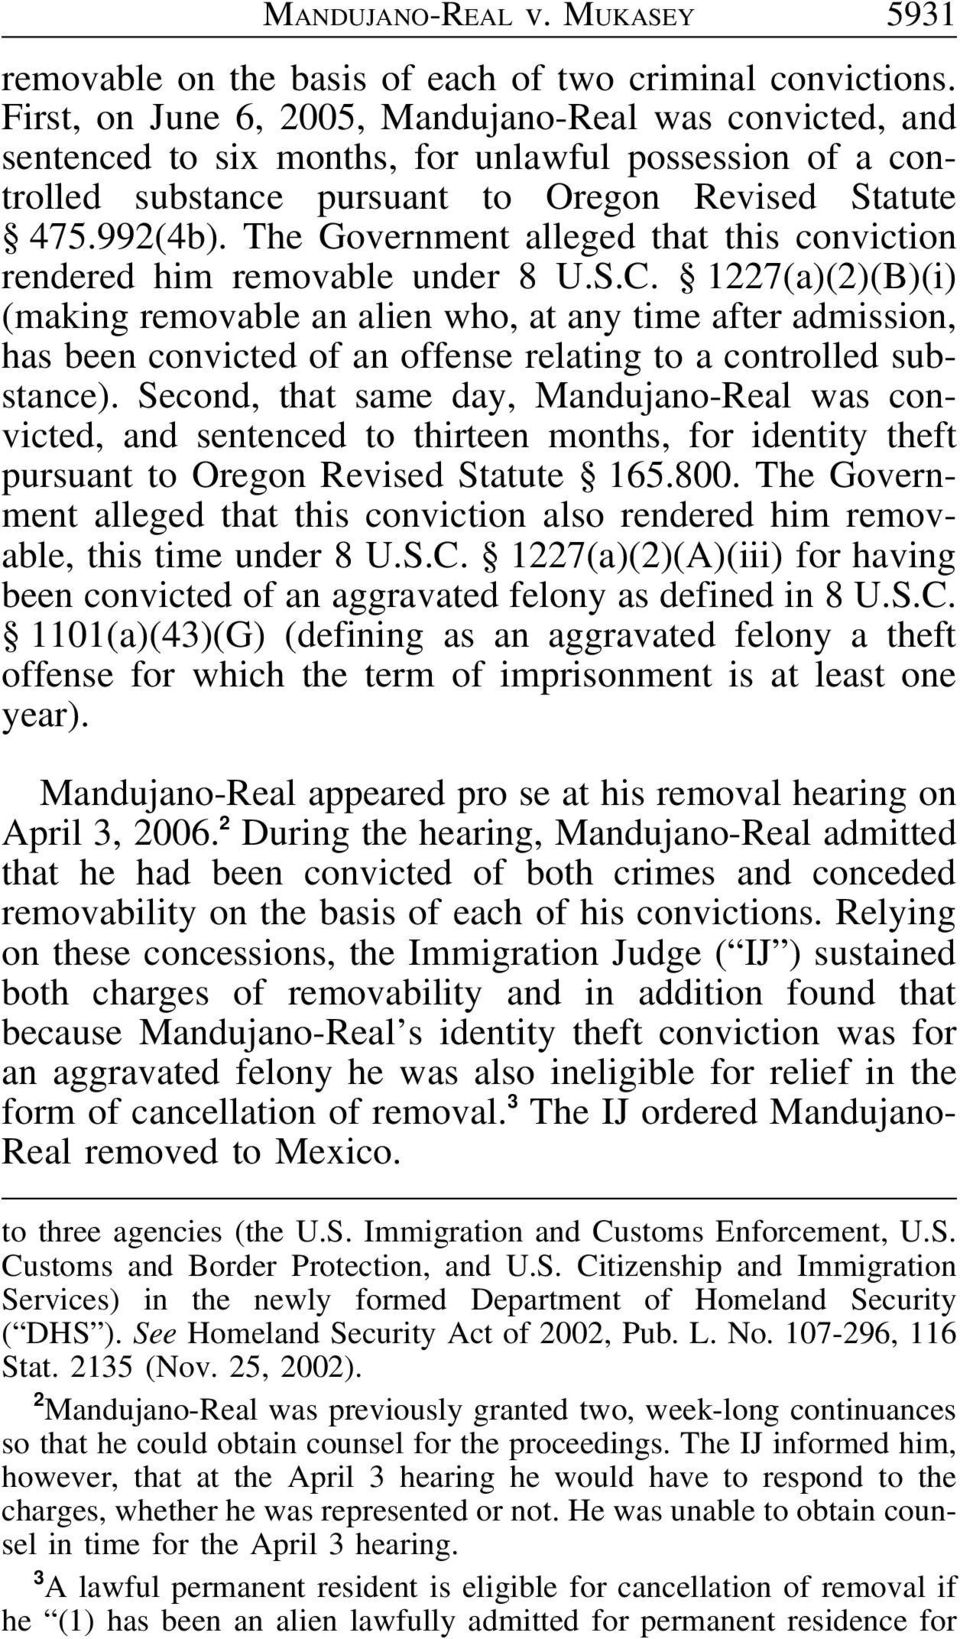 The Government alleged that this conviction rendered him removable under 8 U.S.C.